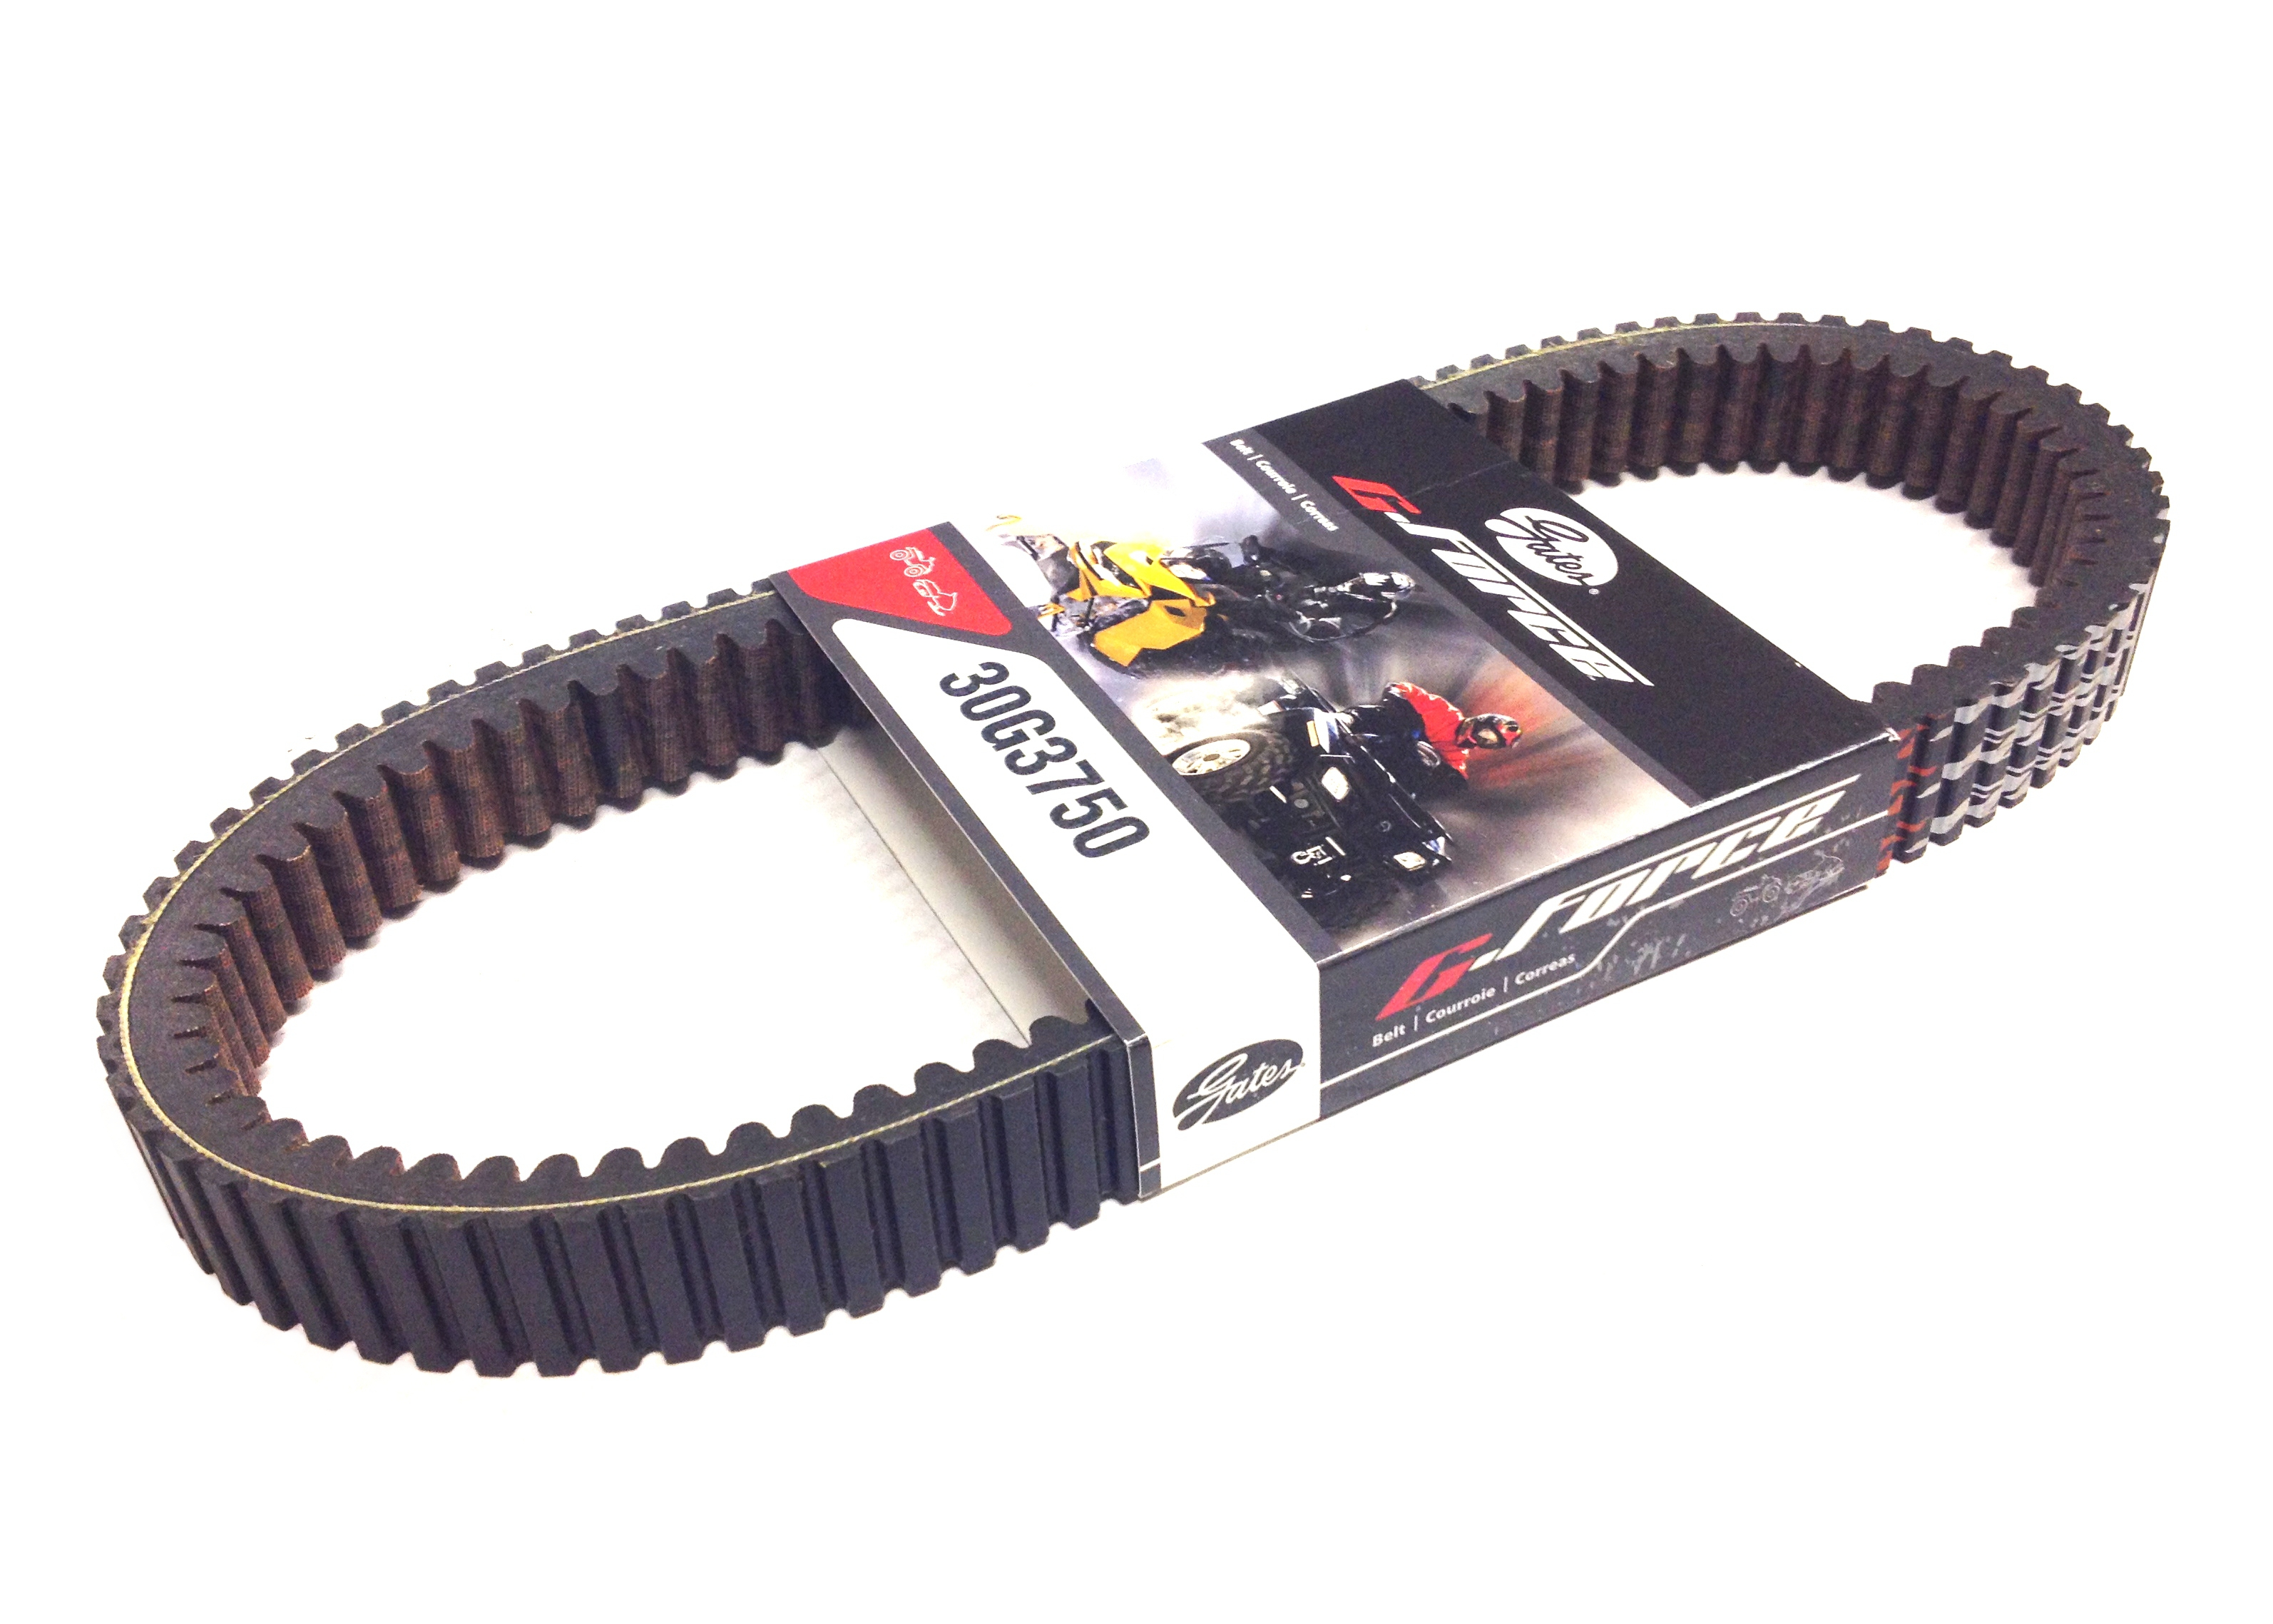 Gates Drive Belt Bombardier 715000302 Replacement for Can-Am 715900030